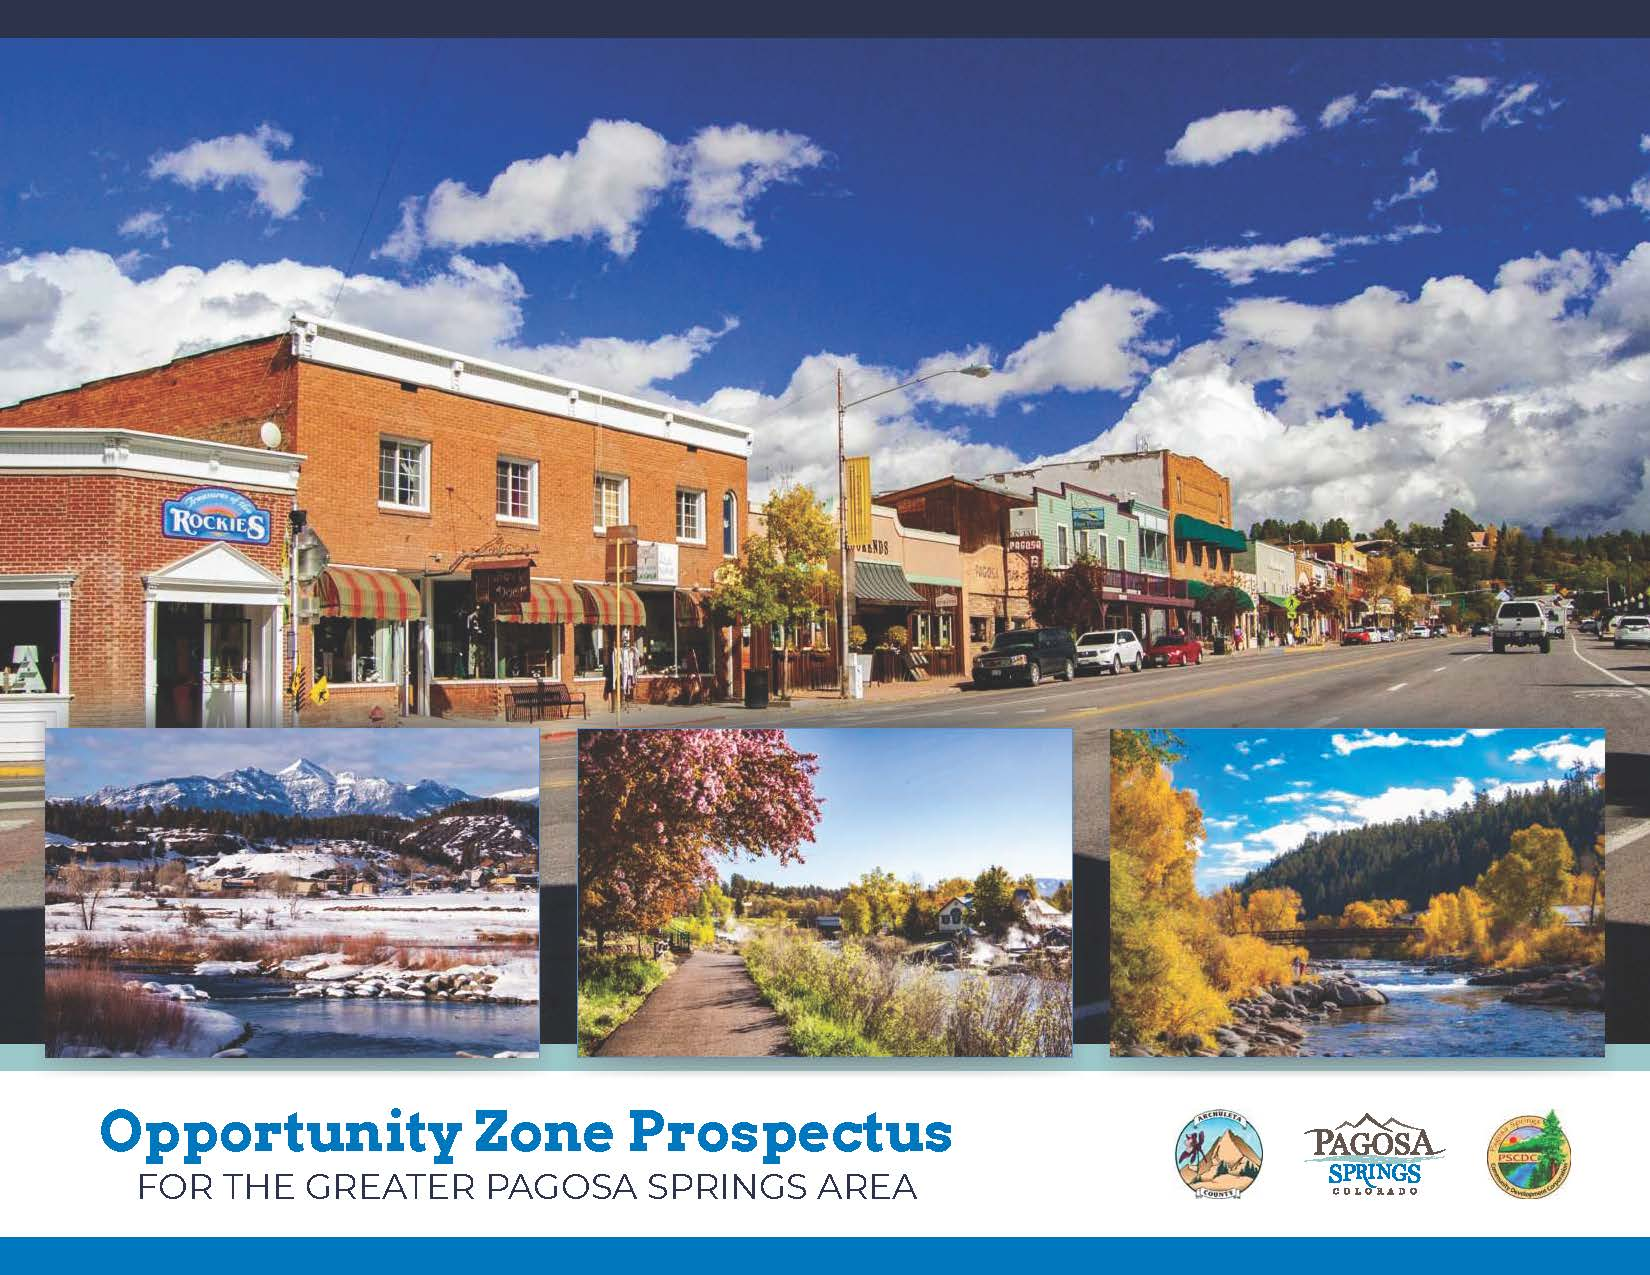 Pagosa Springs Opportunity Zone Prospectus